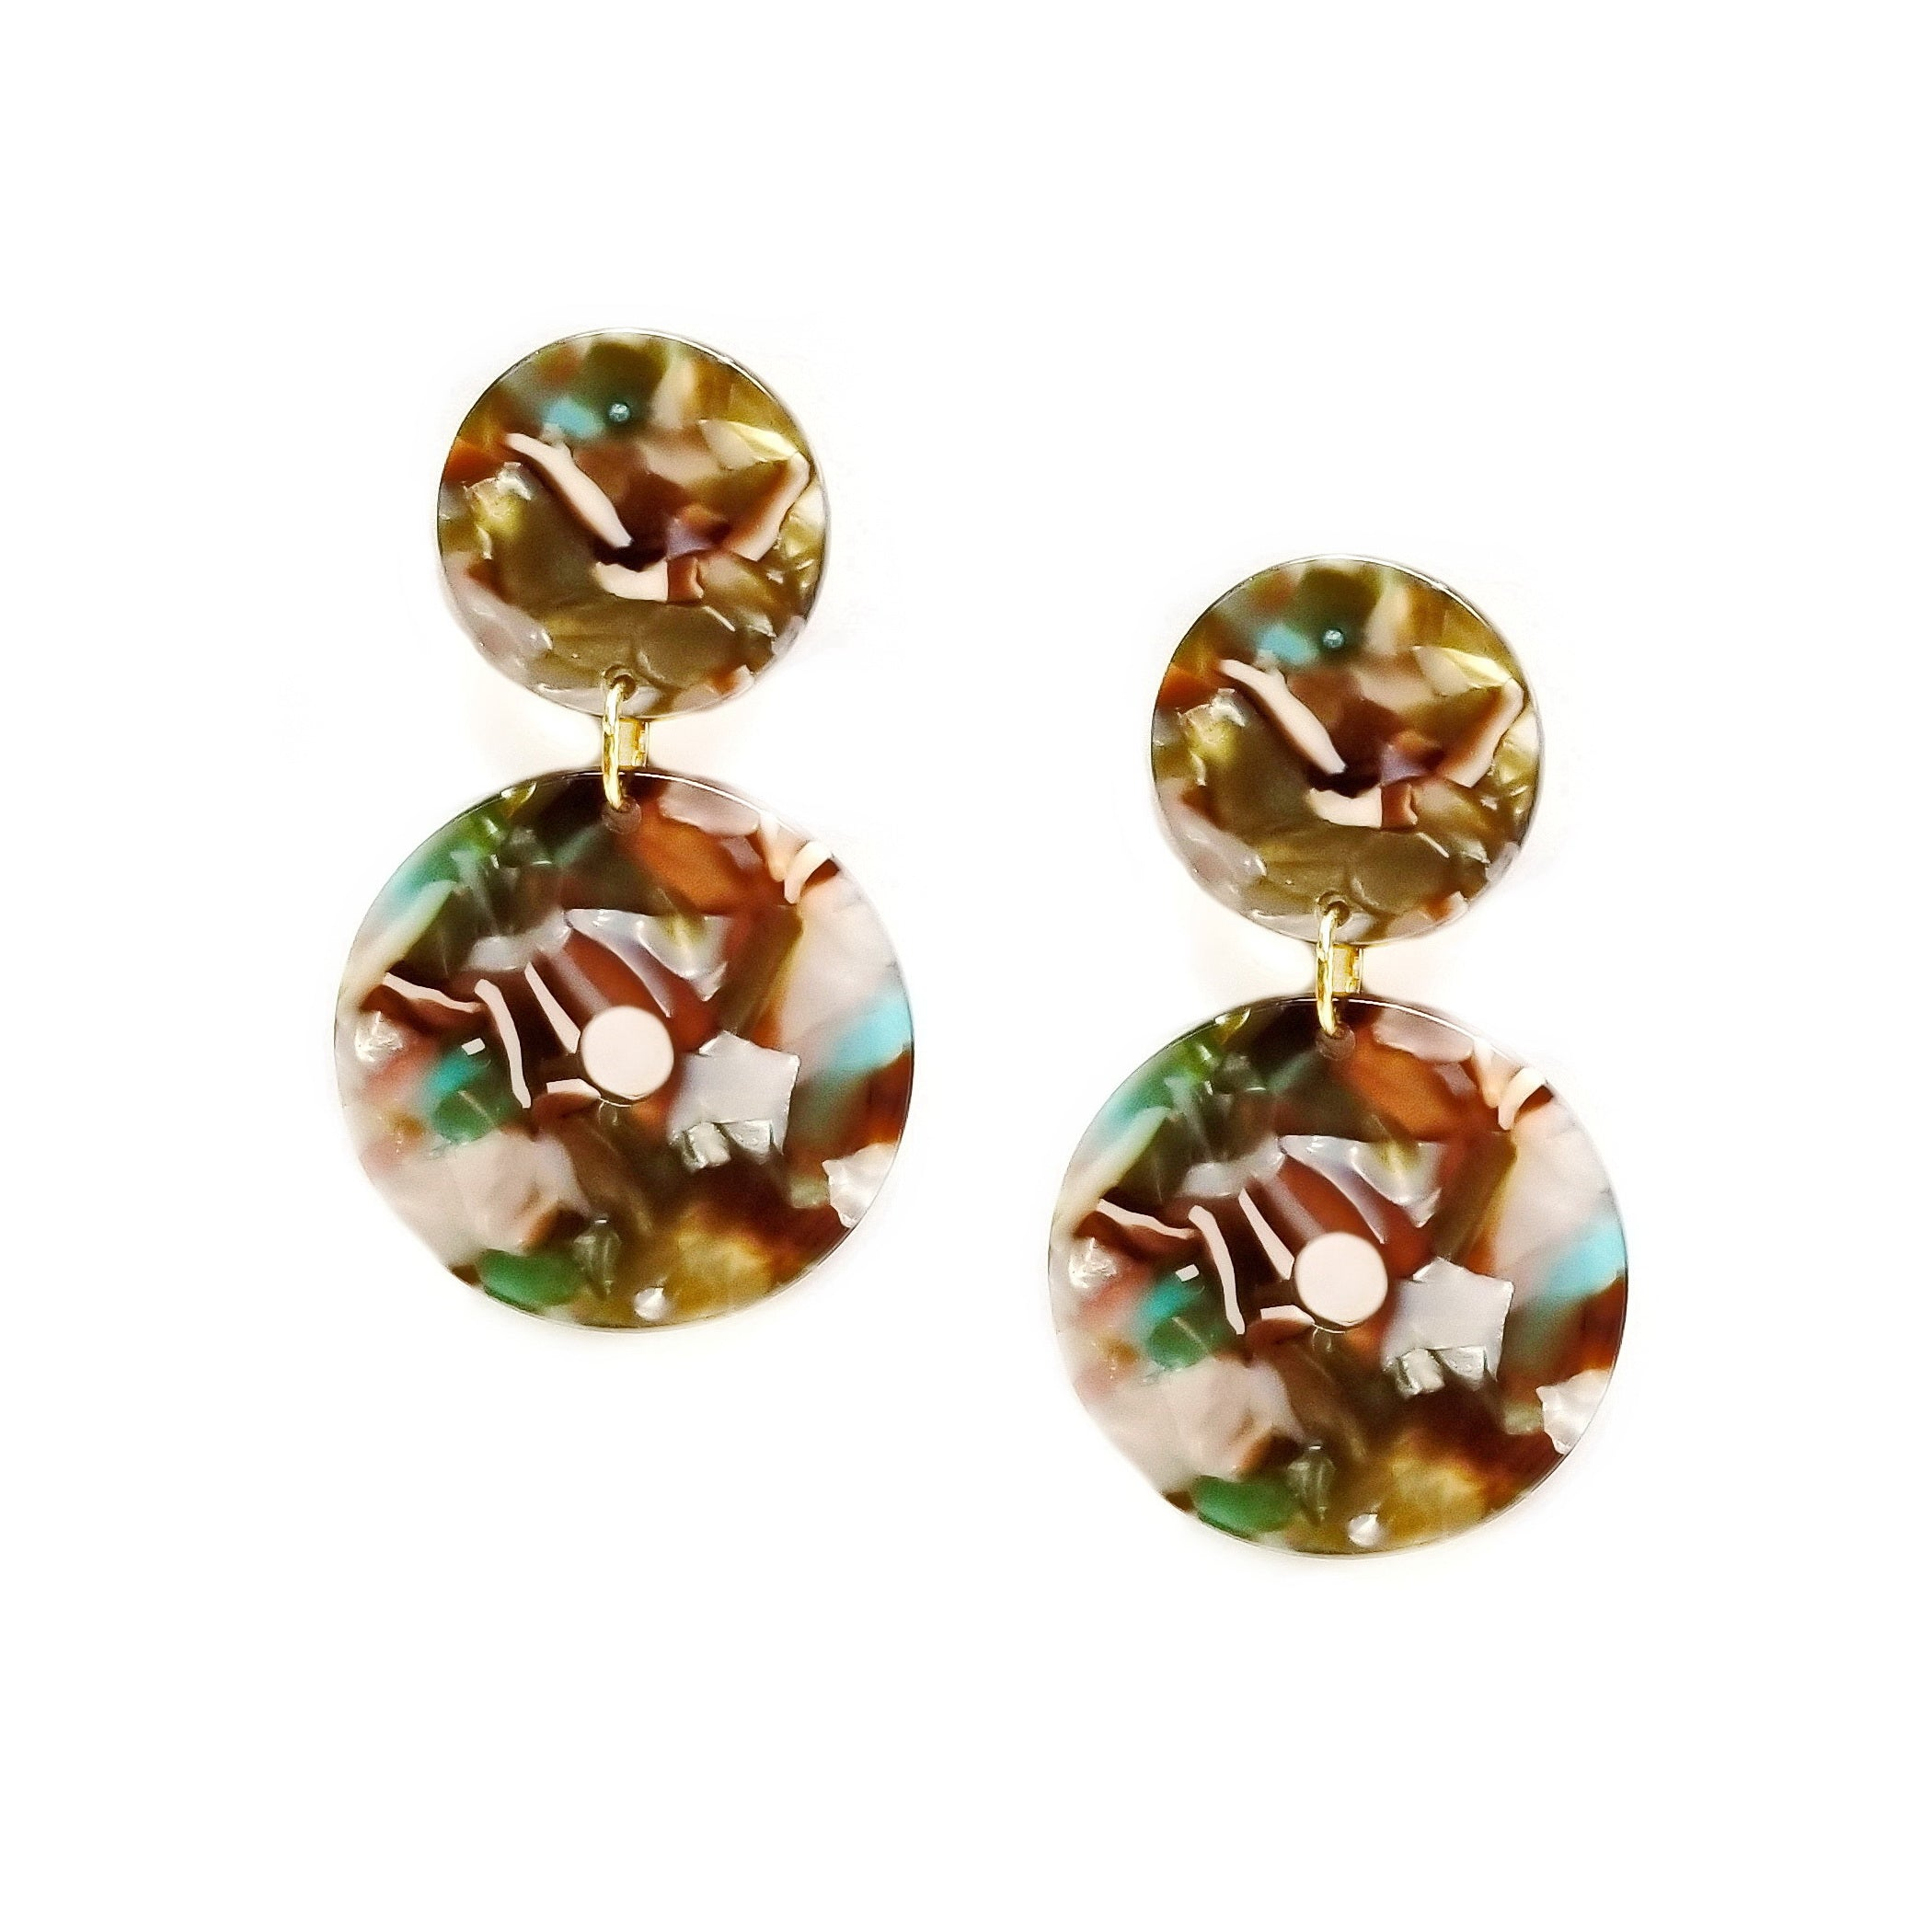 vanda loading by acrylic large earrings operandi close studded jacintho moda brown tortoiseshell tortoise